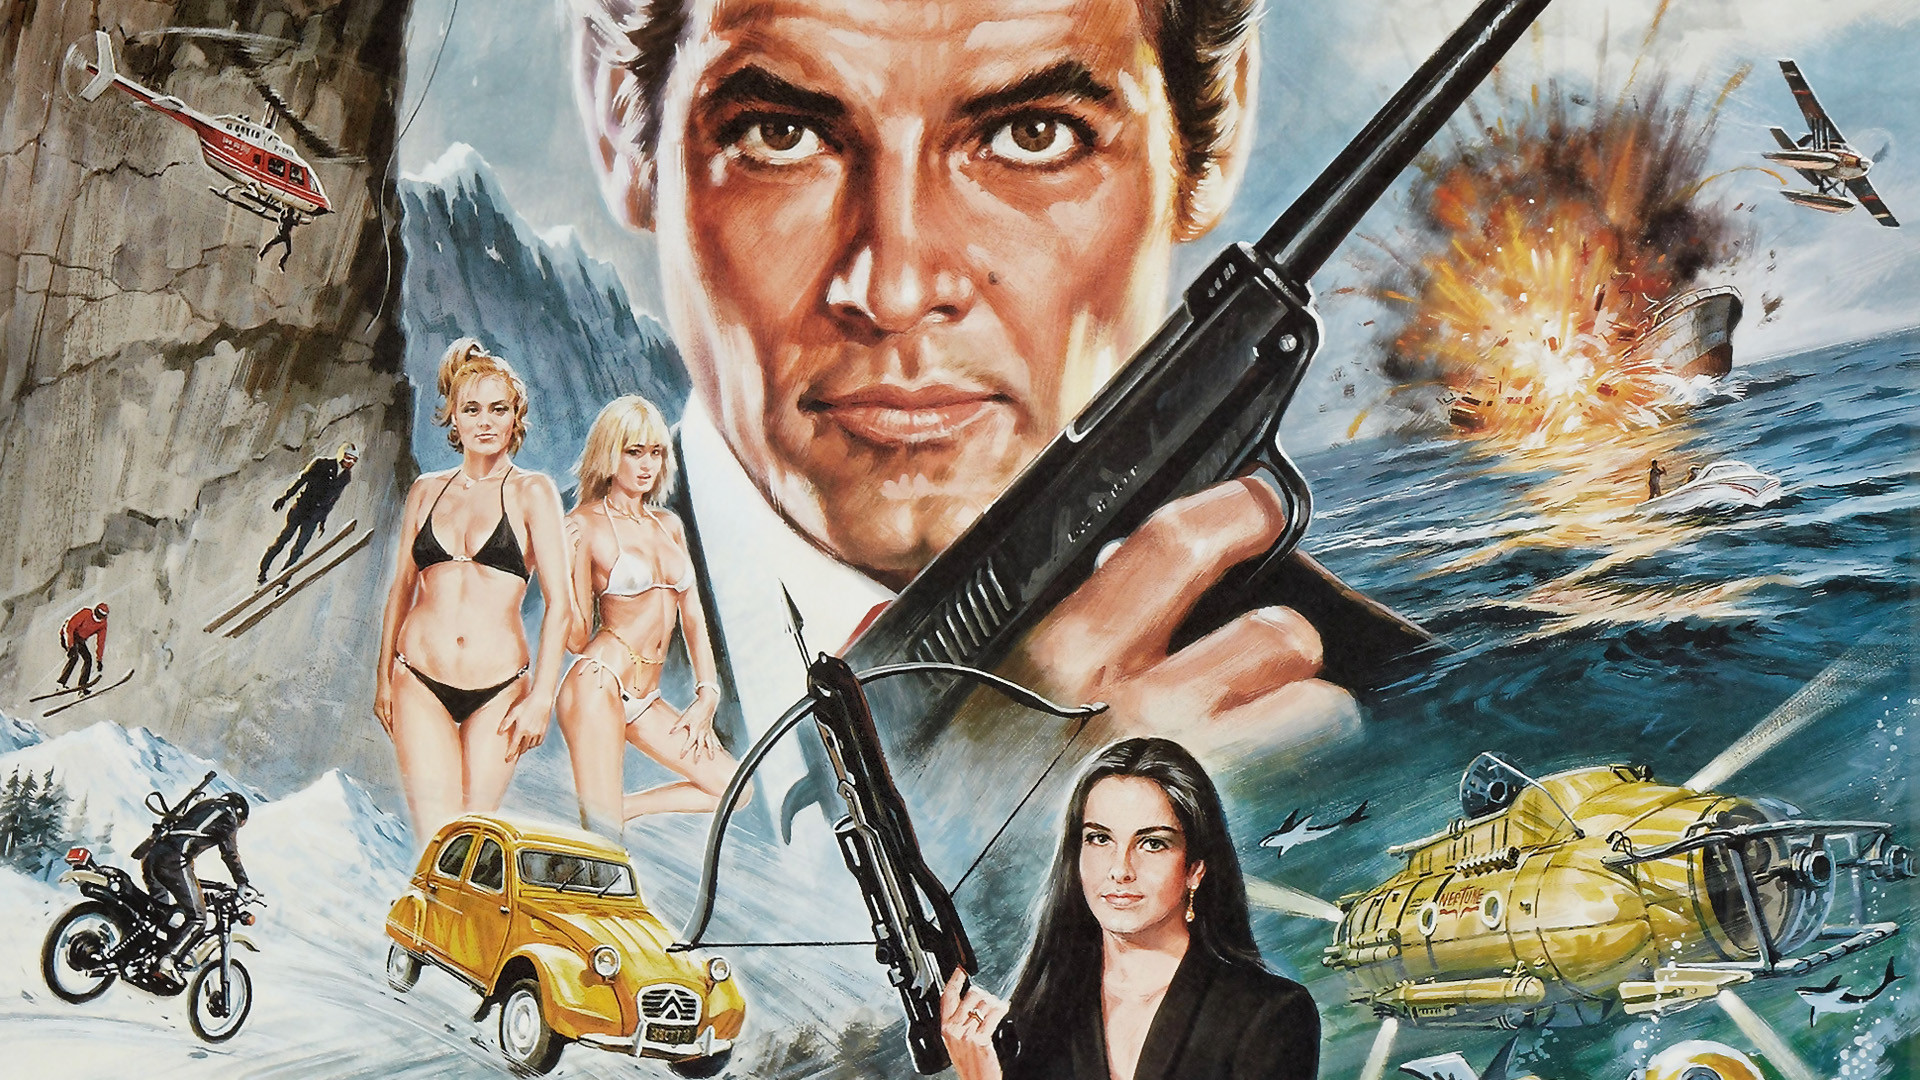 FOR YOUR EYES ONLY james bond 007 f